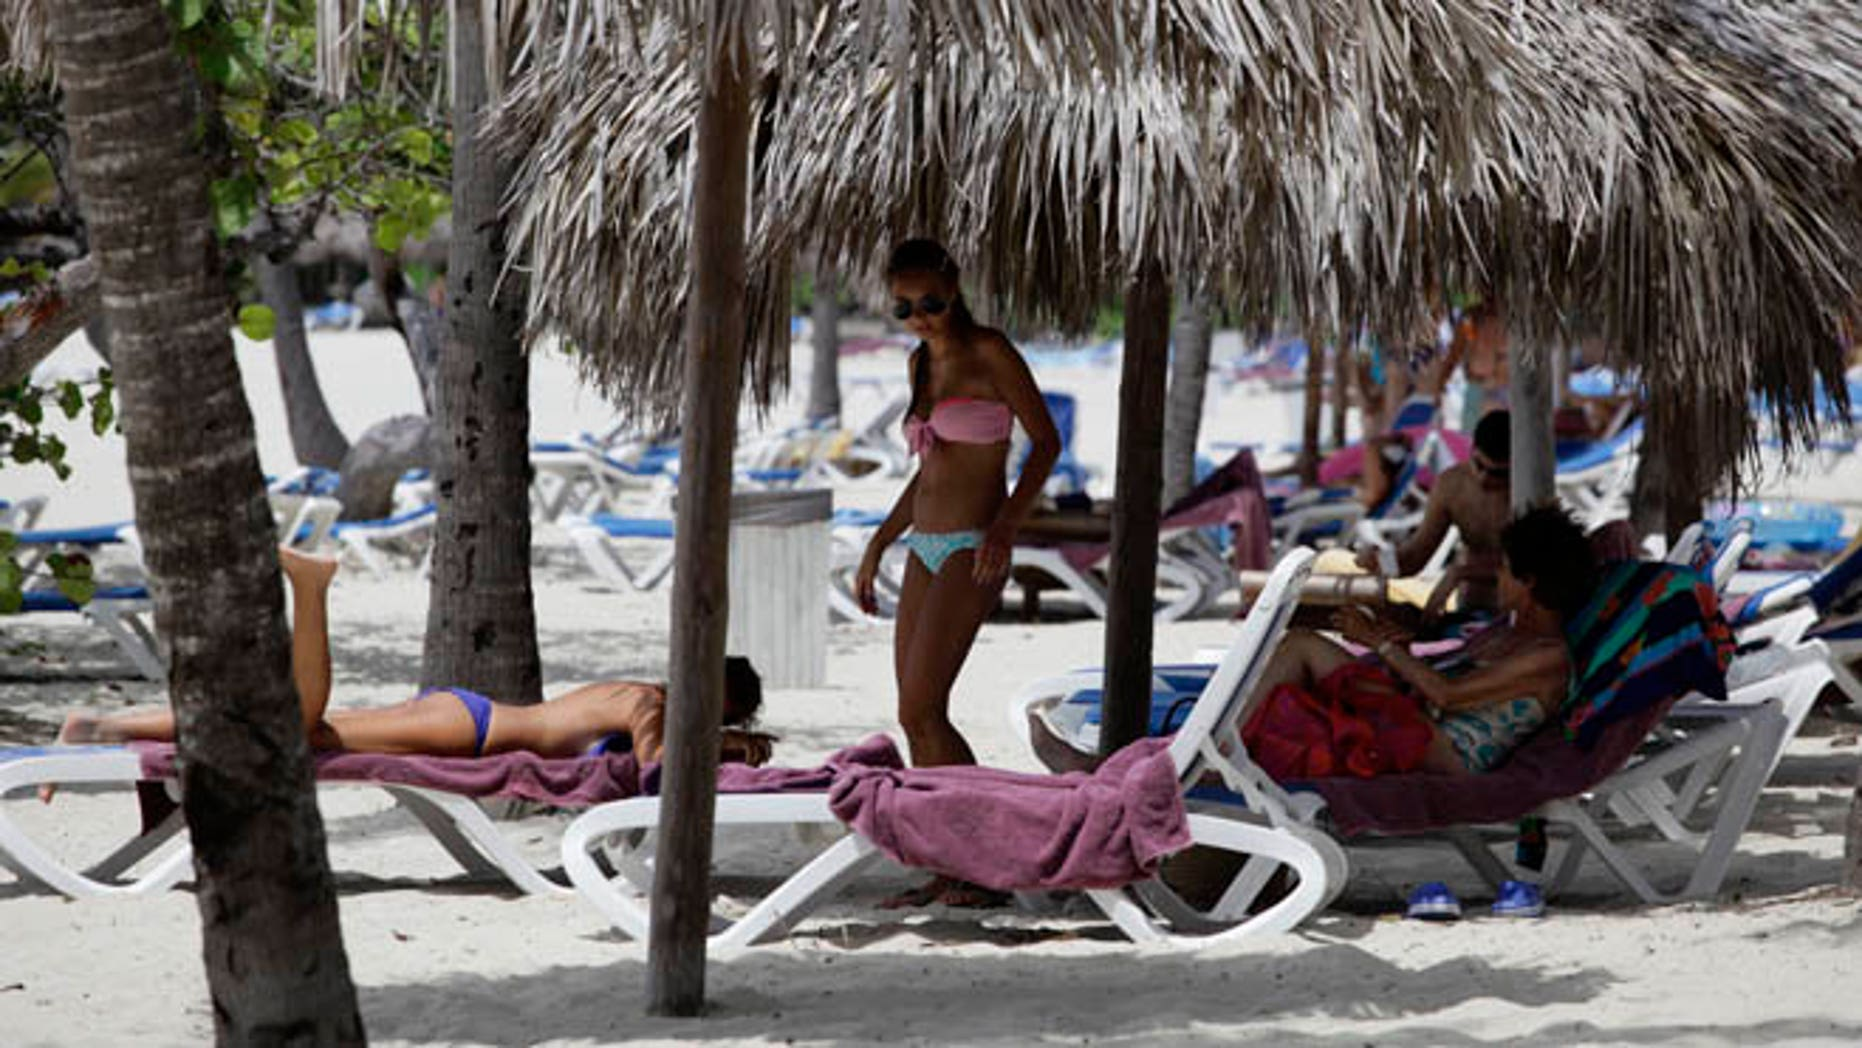 Foreign tourists use the beach at a five-star all-inclusive resort in Varadero, July 29, 2012. Cuba's beaches are an attraction for tourists the world over, whether they are foreigners paying thousands of dollars to reach them, or Cubans paying as little as five dollars for a three-day vacation in a seaside cabin. Picture taken July 29, 2012. REUTERS/Desmond Boylan (CUBA)